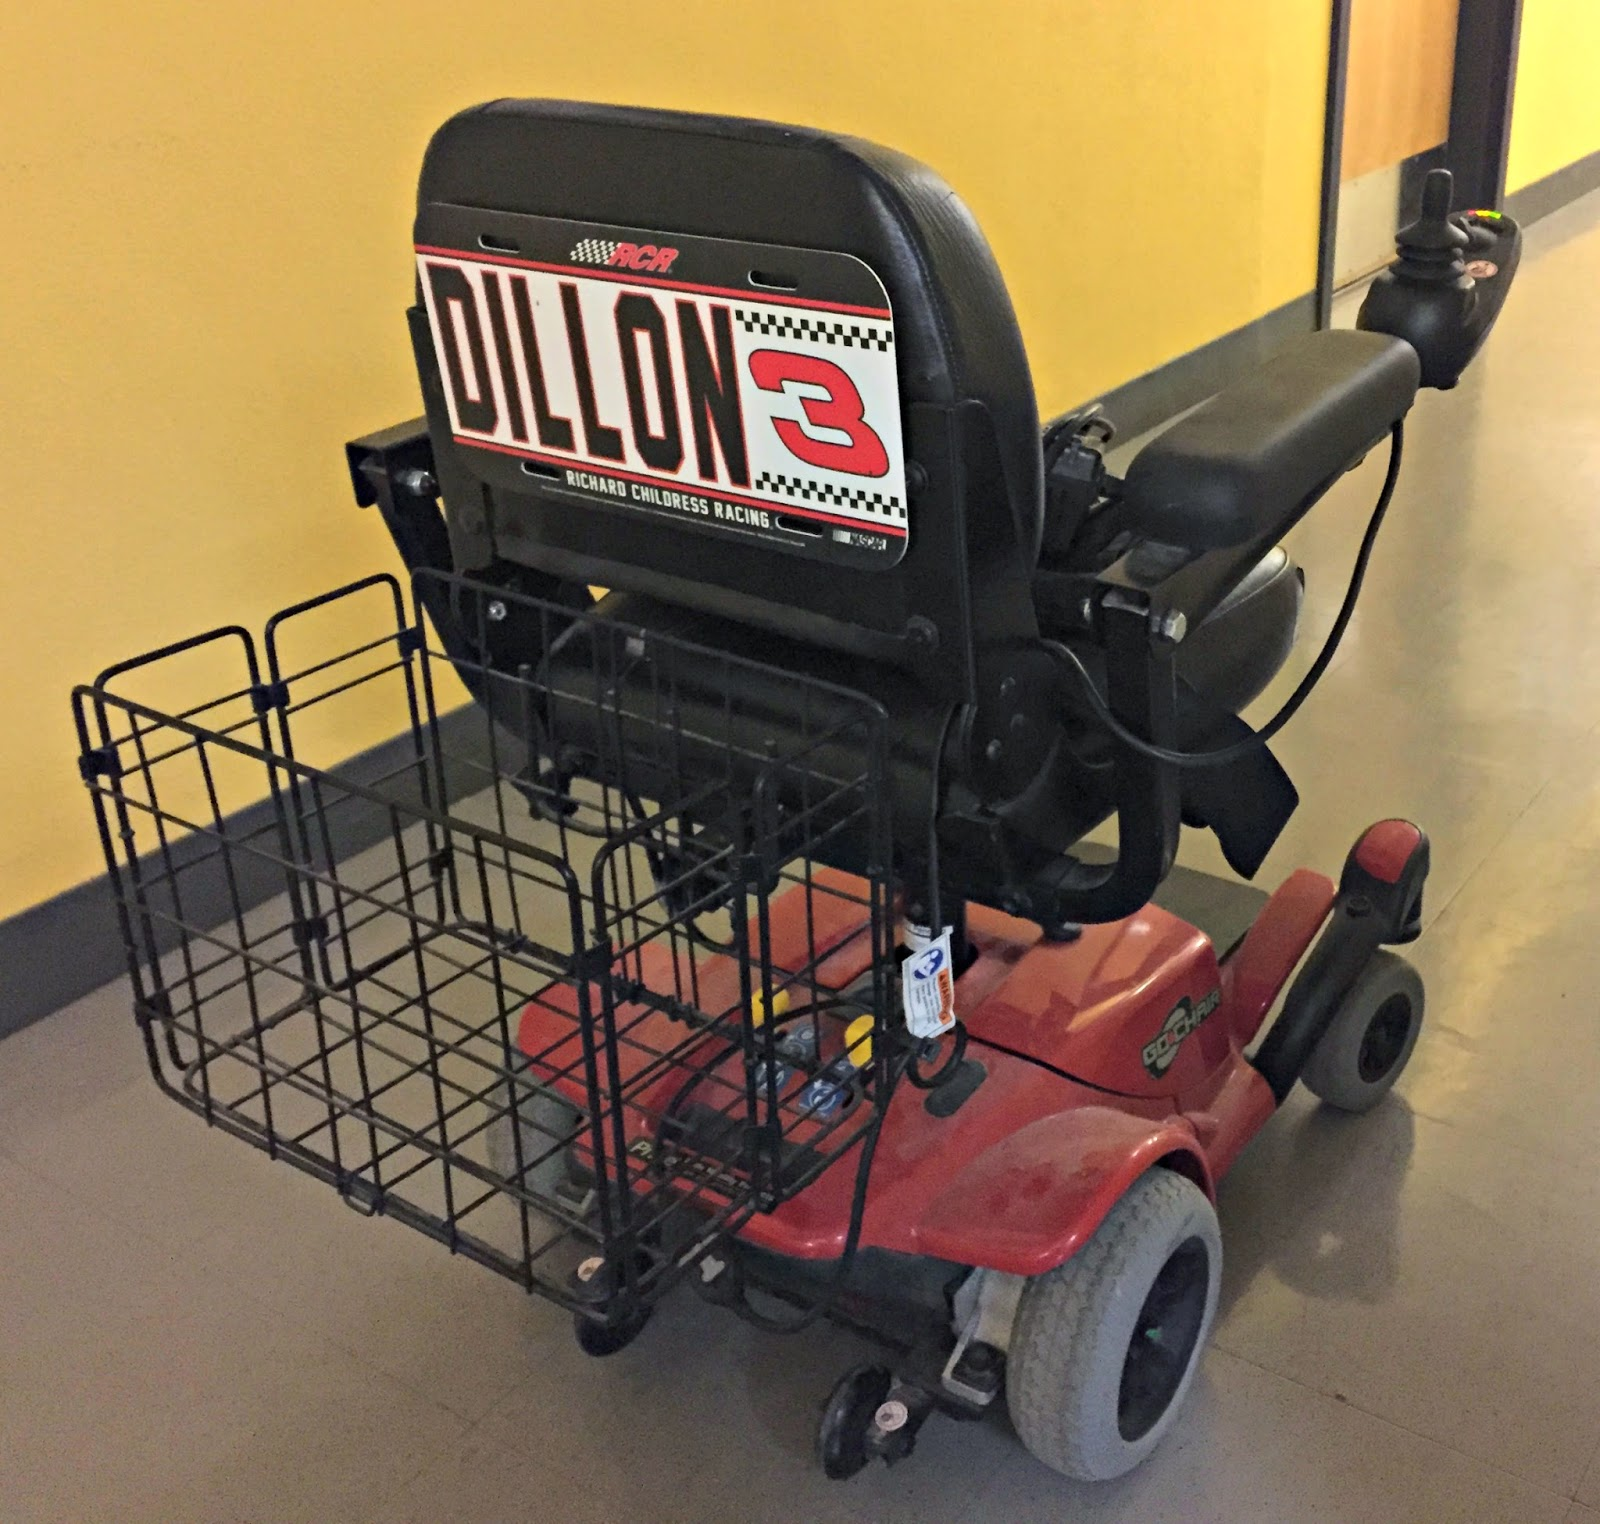 Dillon's refurbished power wheelchair complete with awesome Dillon racing sticker.